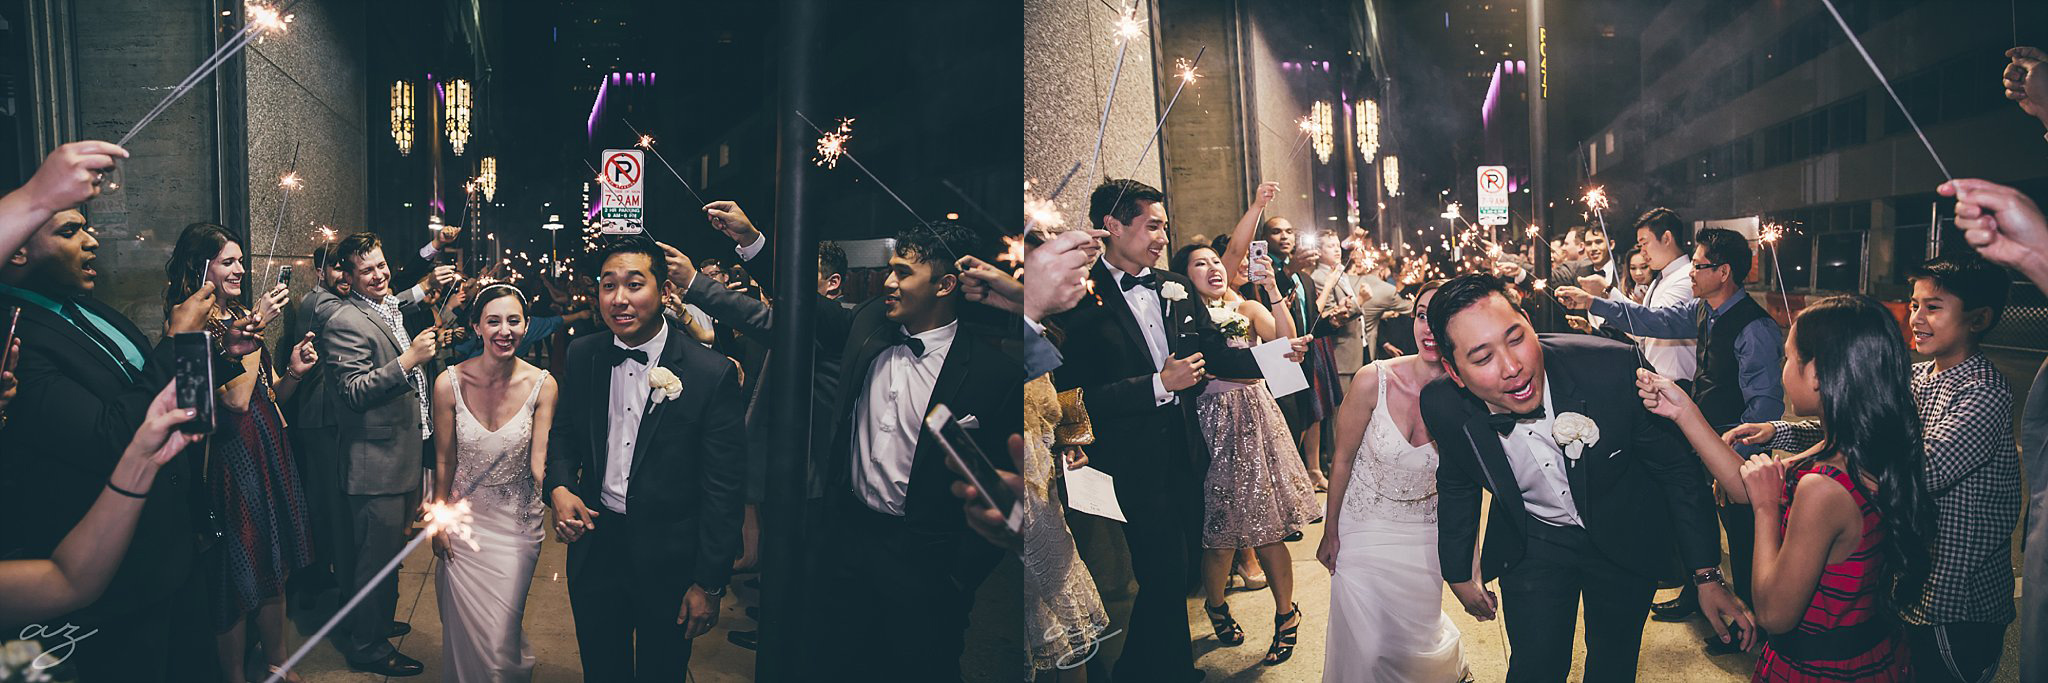 Carlisle Room wedding sparkler exit in downtown dallas